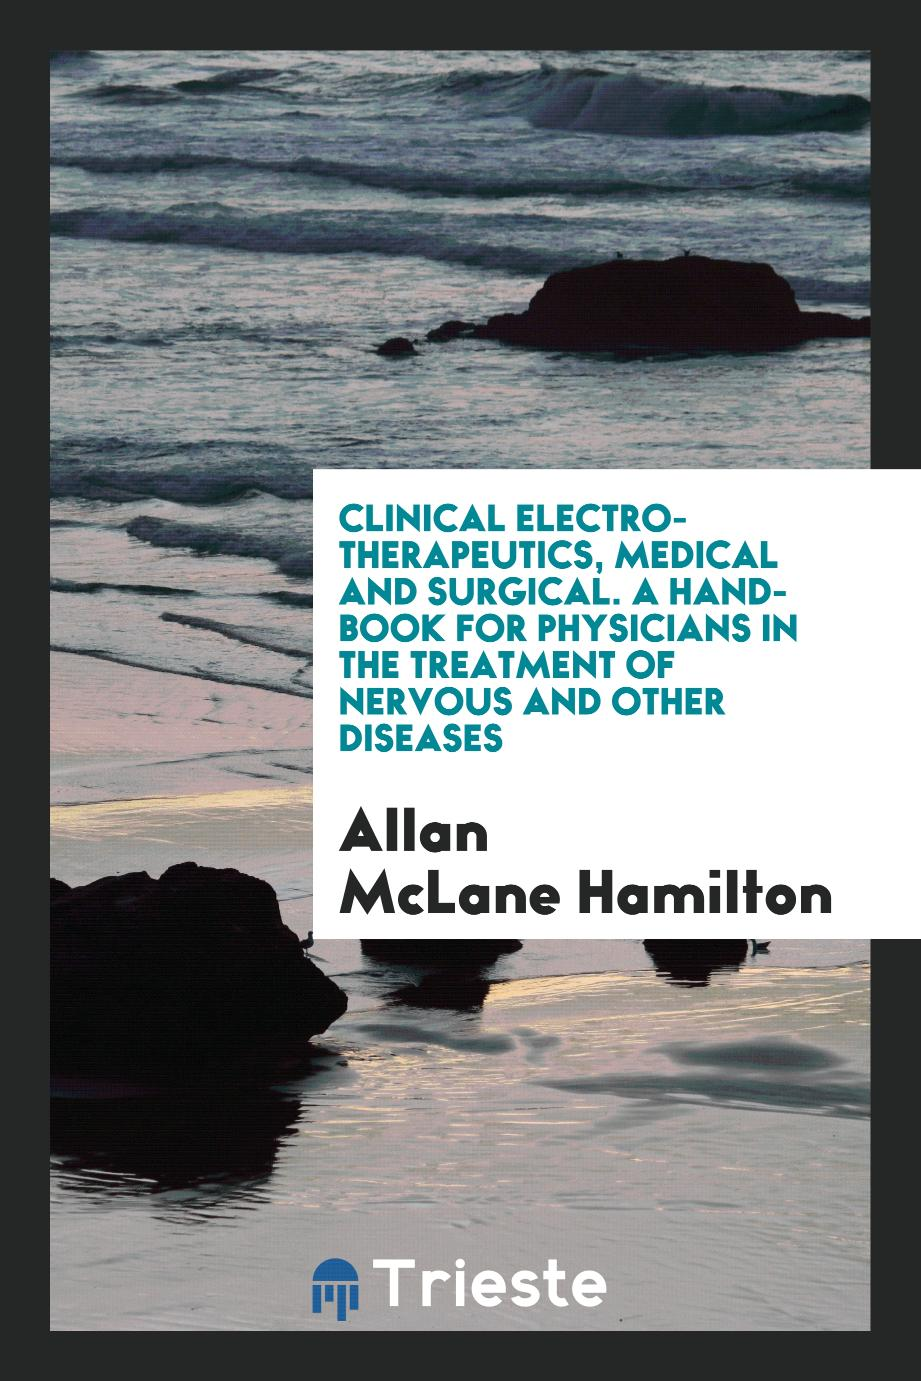 Clinical Electro-Therapeutics, Medical and Surgical. A Hand-Book for Physicians in the Treatment of Nervous and Other Diseases